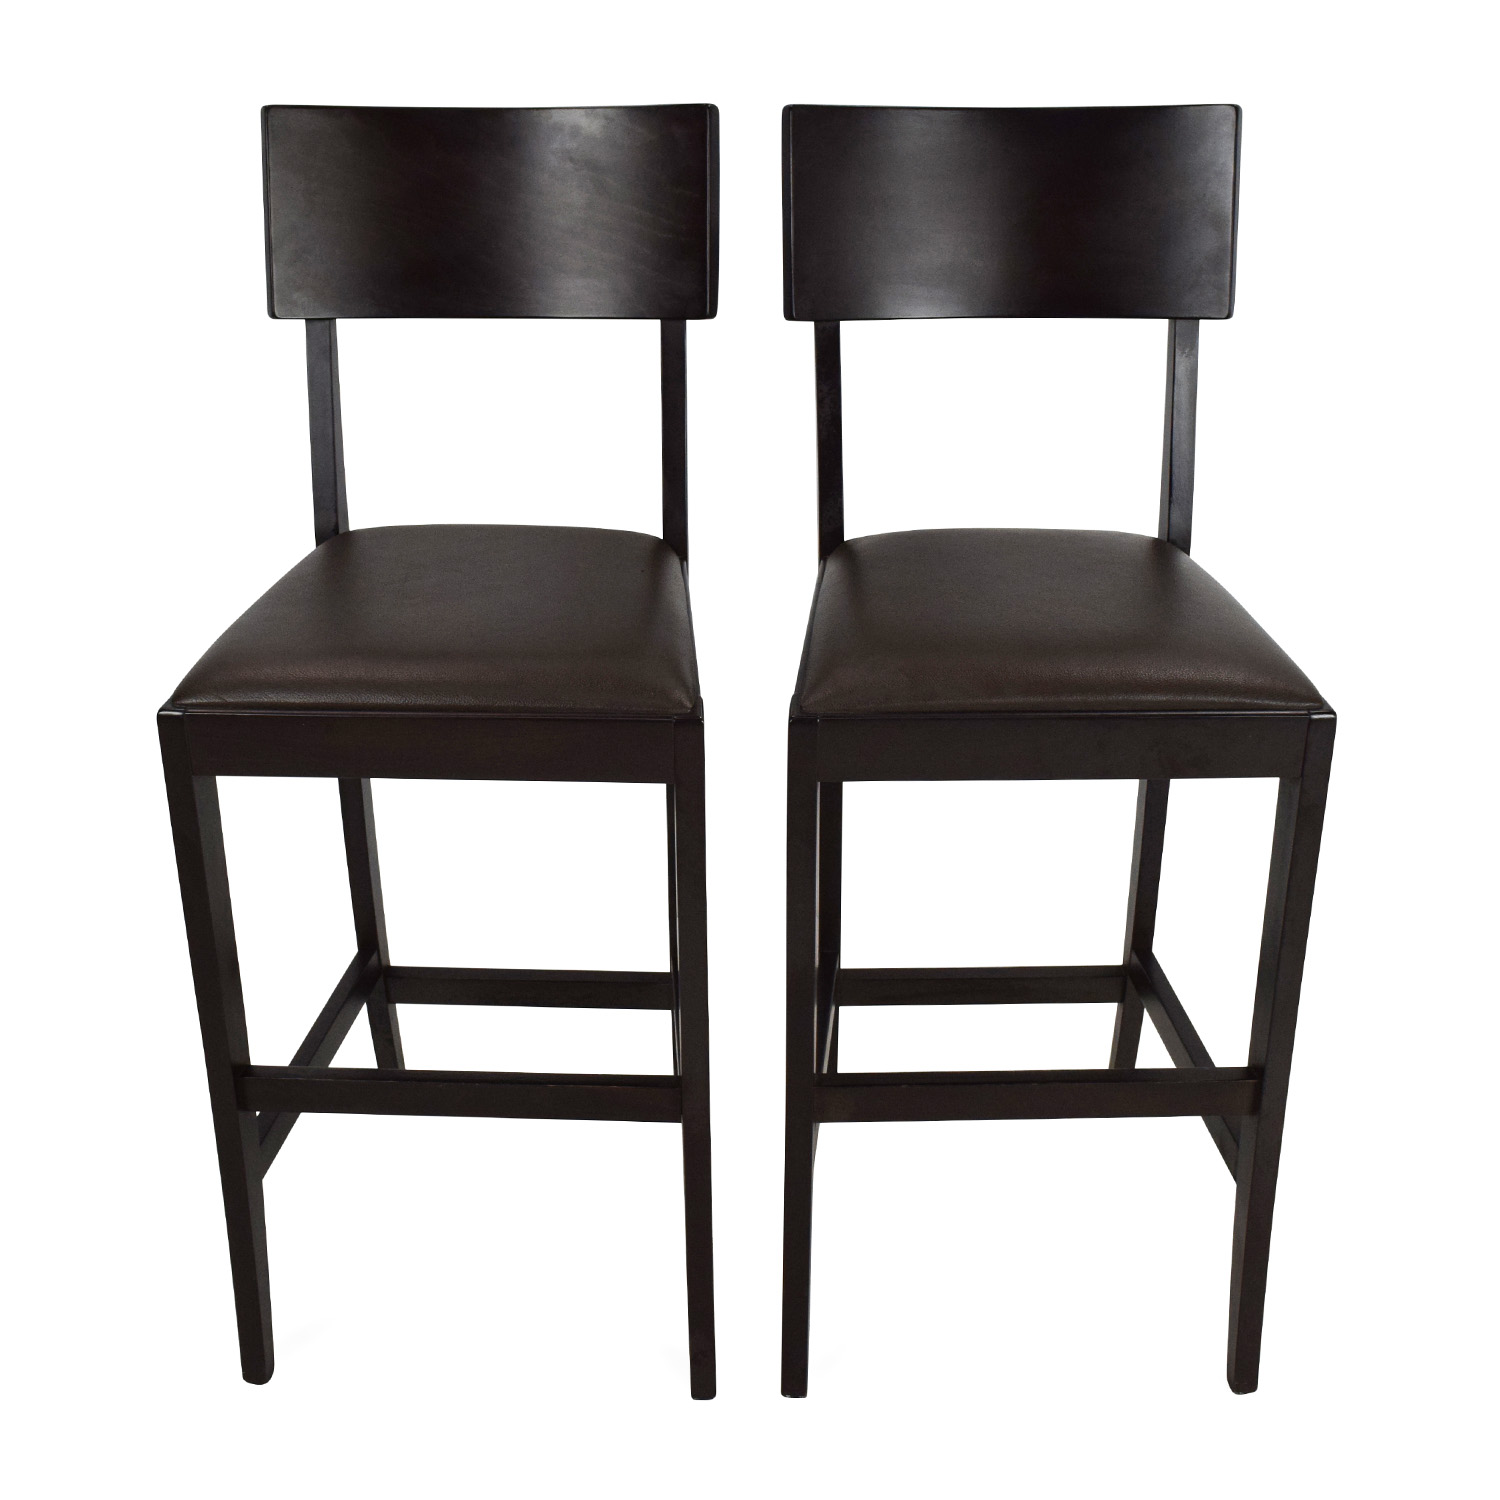 chairs crate and barrel sure fit chair covers target 52 off bar stools